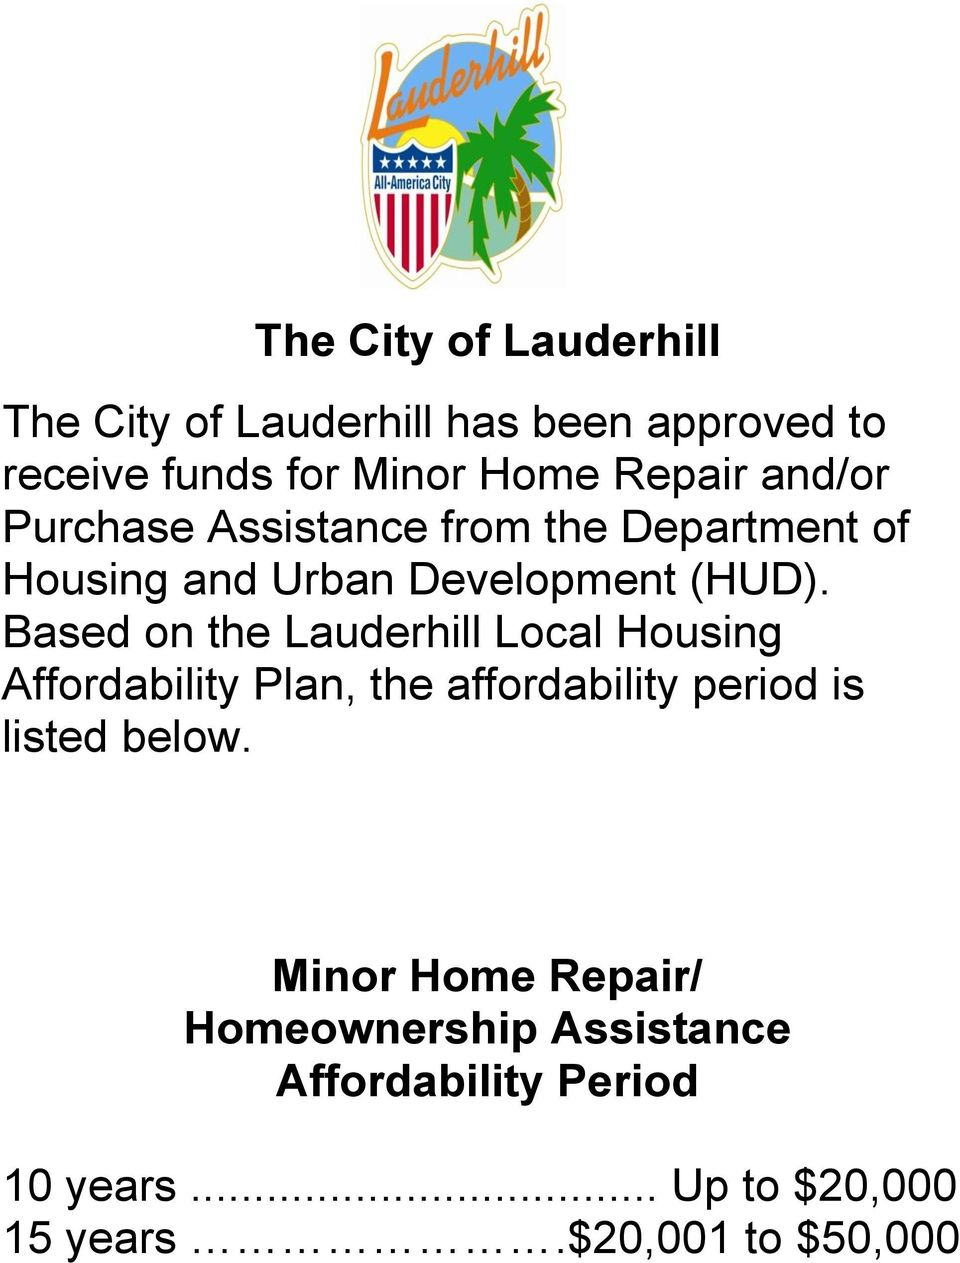 Based on the Lauderhill Local Housing Affordability Plan, the affordability period is listed below.